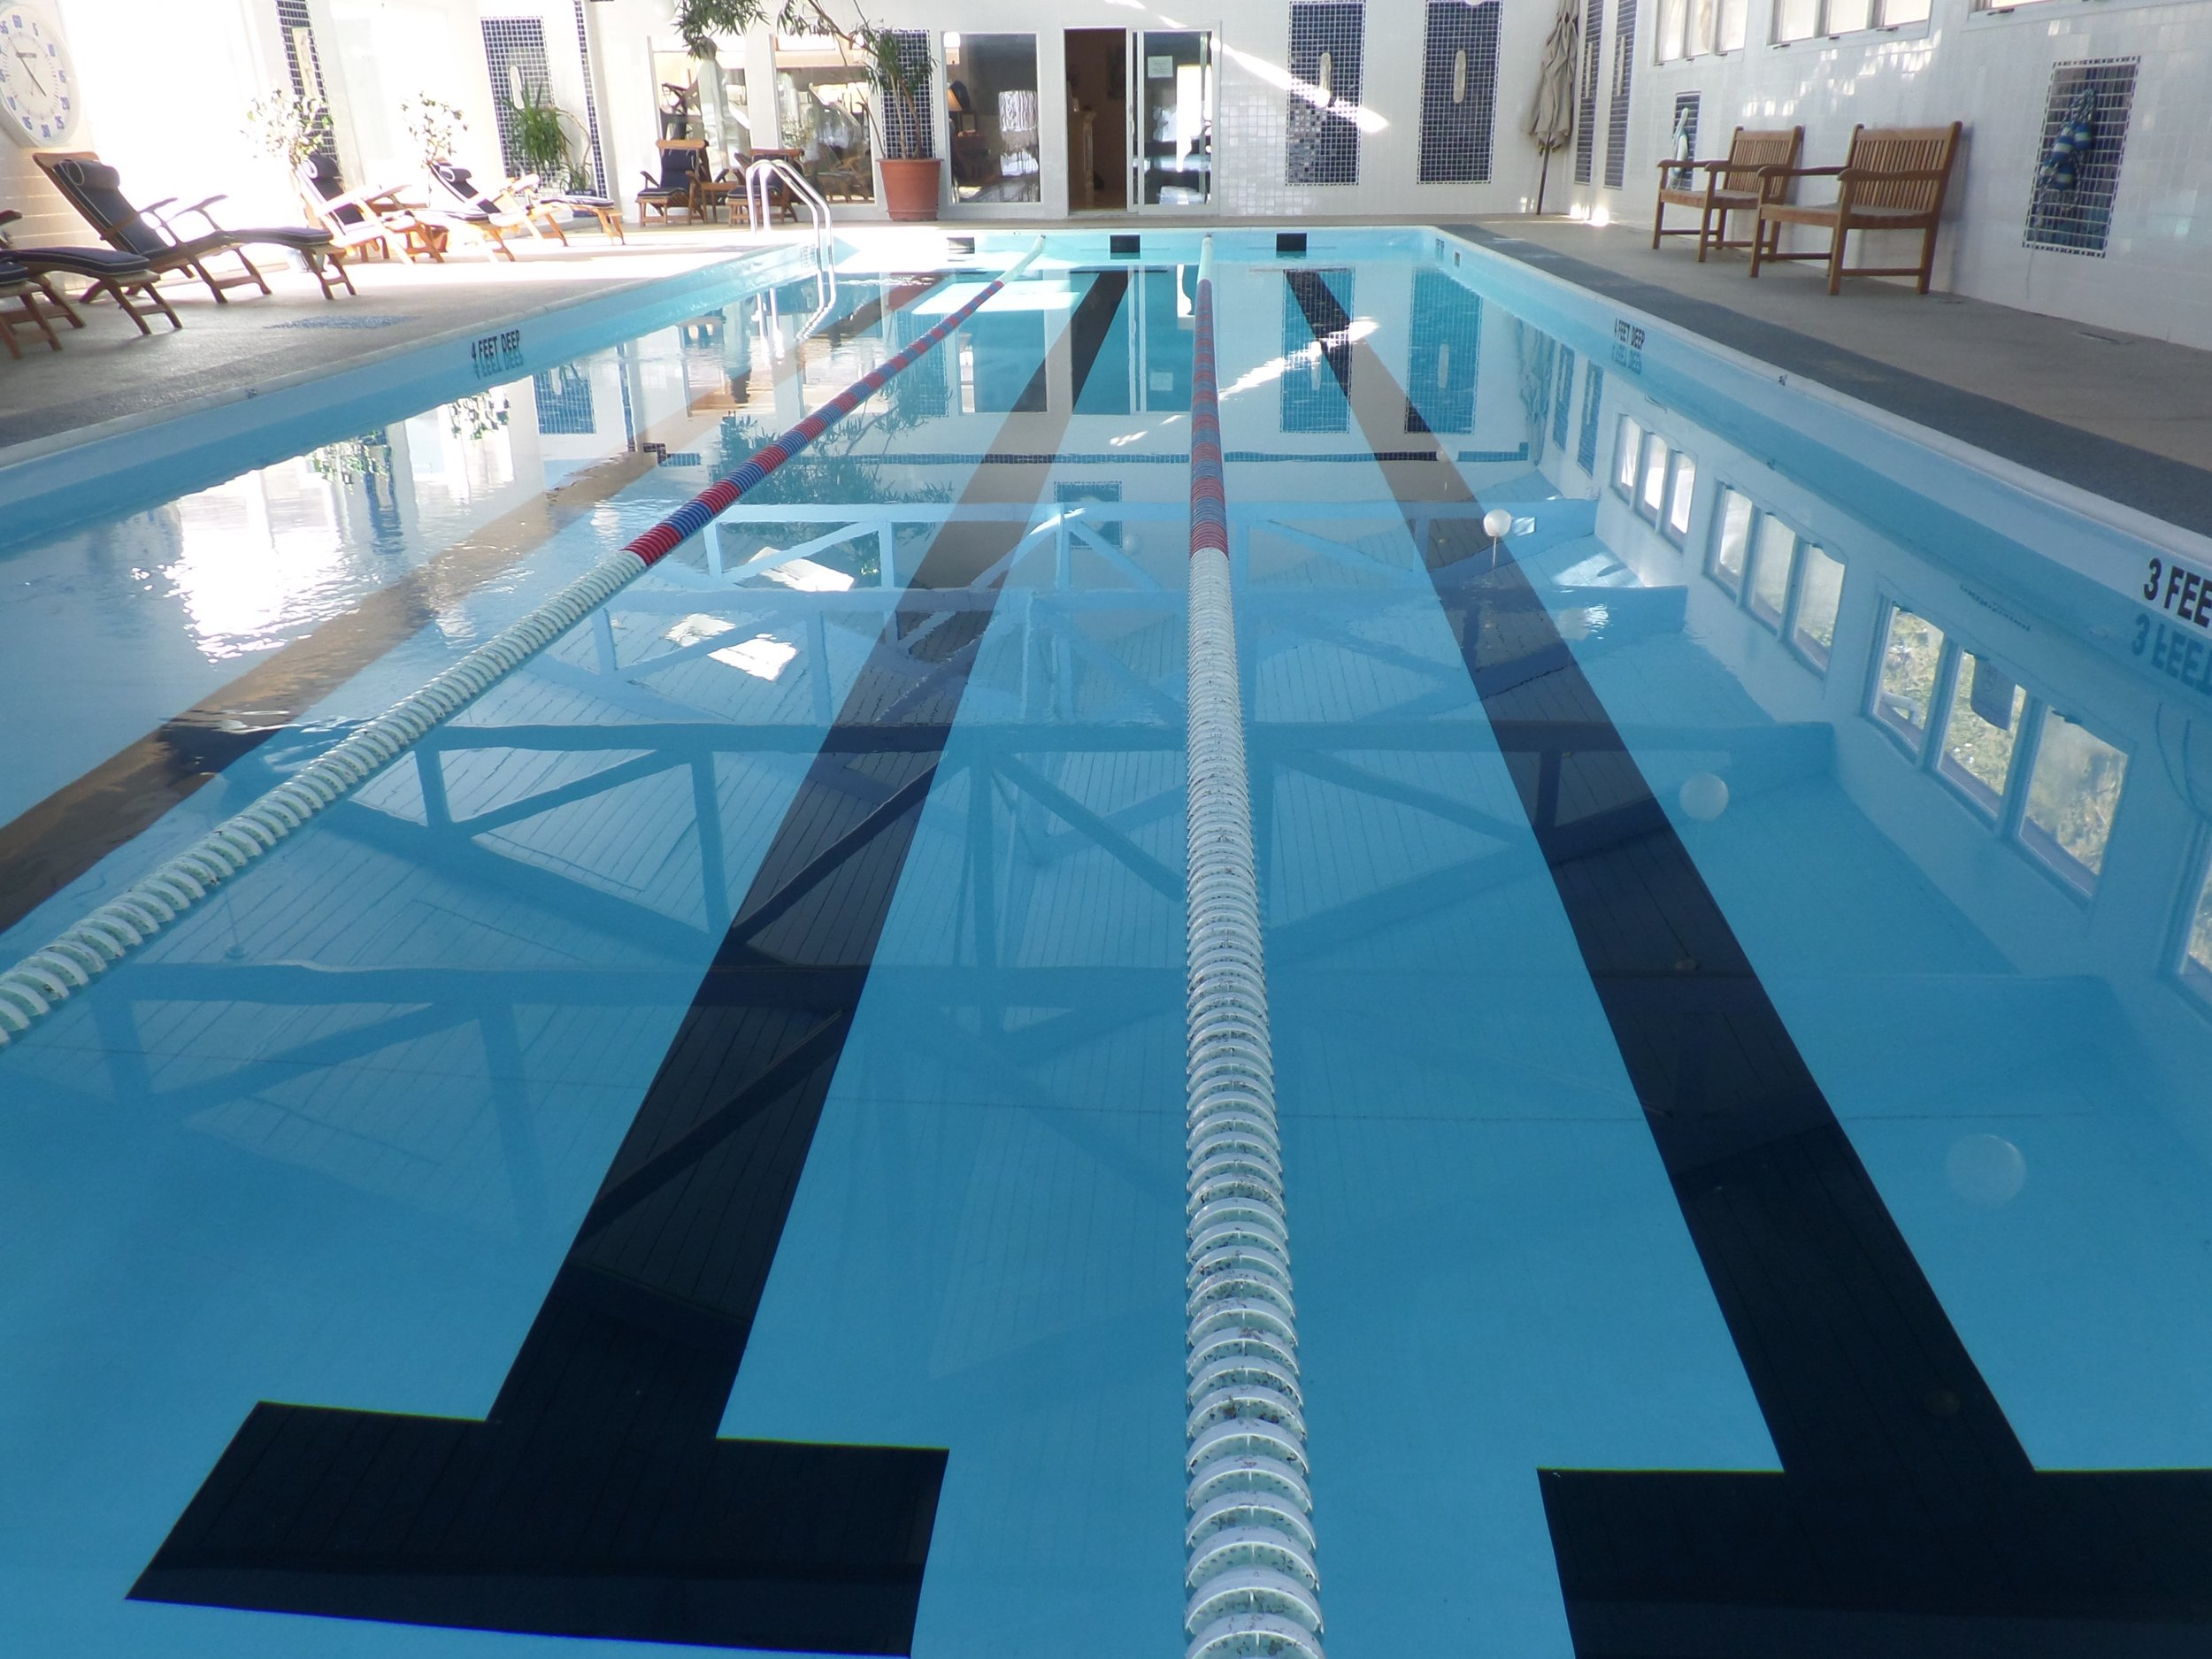 indoor swimming pool.JPG